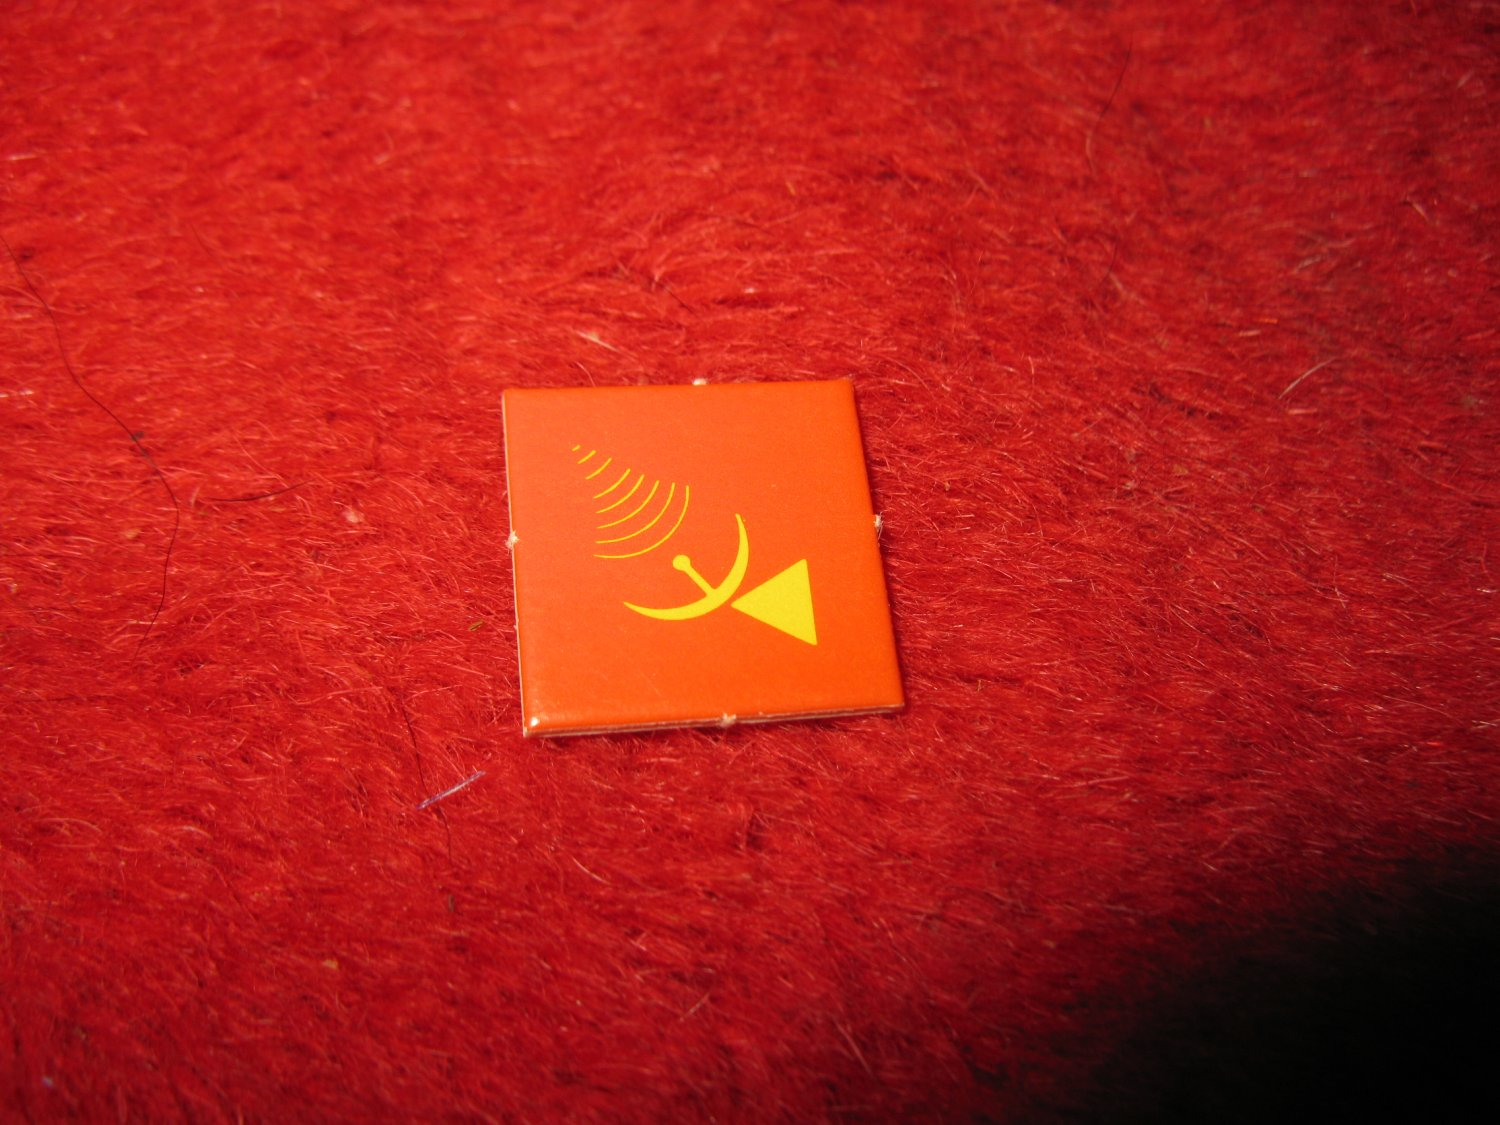 1988 The Hunt for Red October Board Game Piece: Radar/Sonar red Square Counter